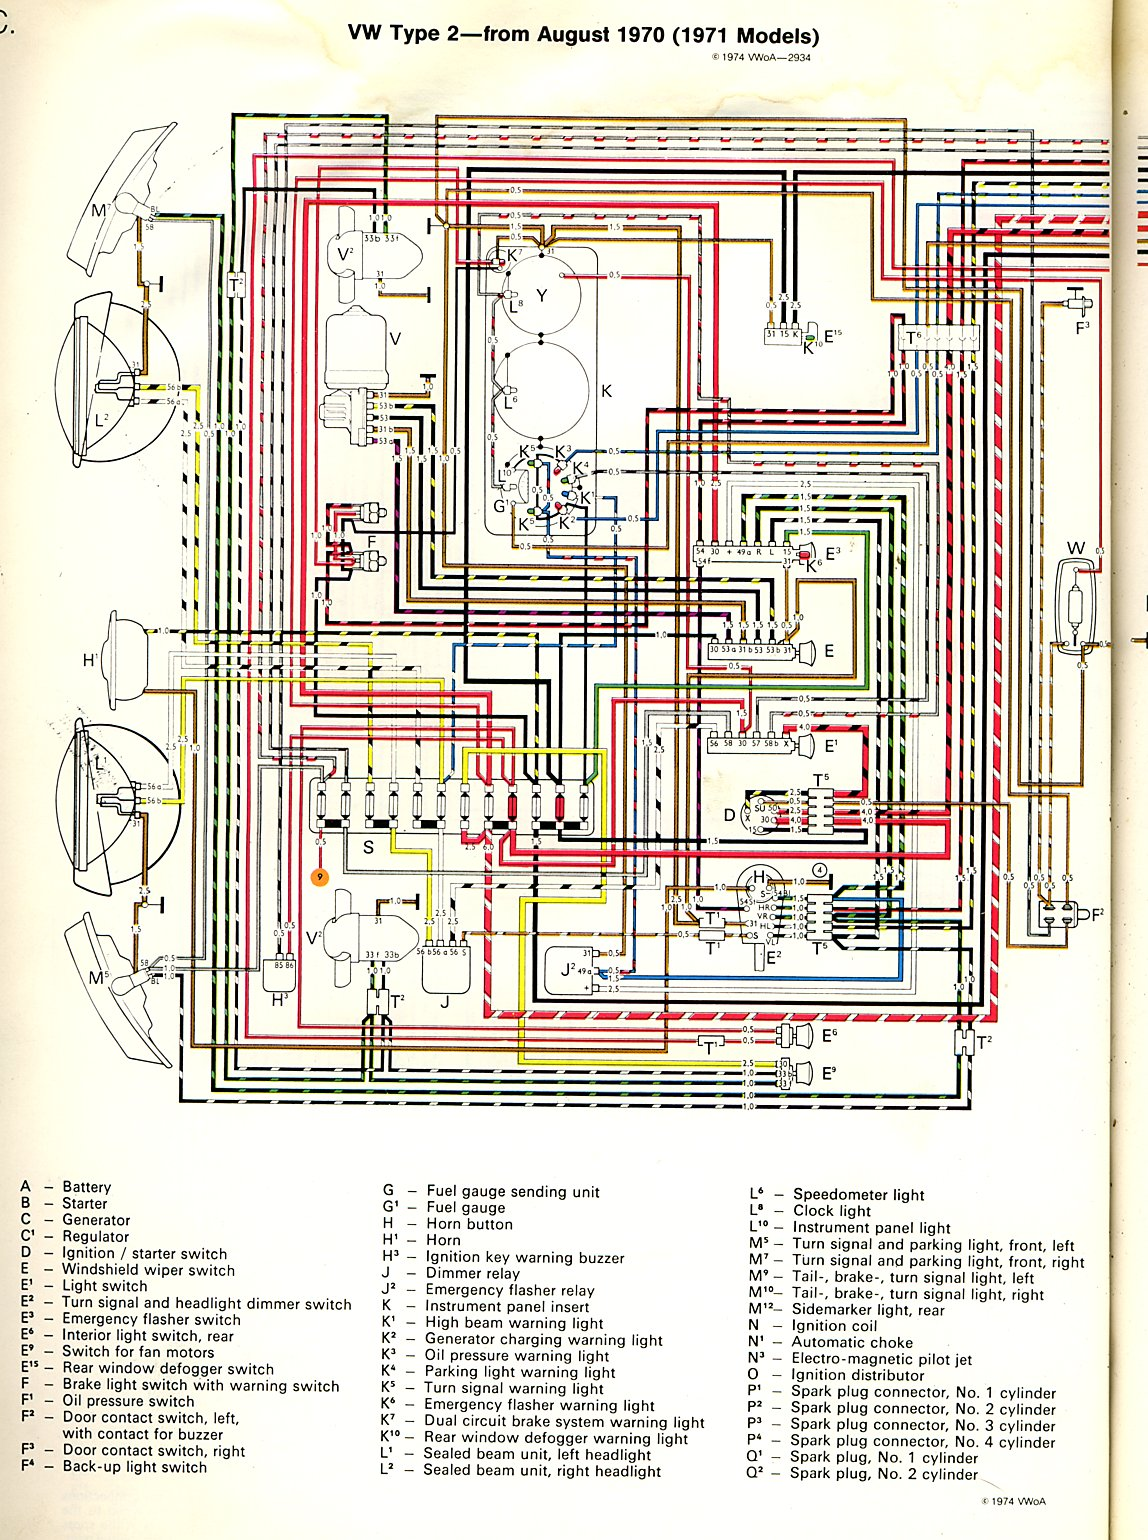 thesamba.com :: type 2 wiring diagrams 1970 vw wiring digram